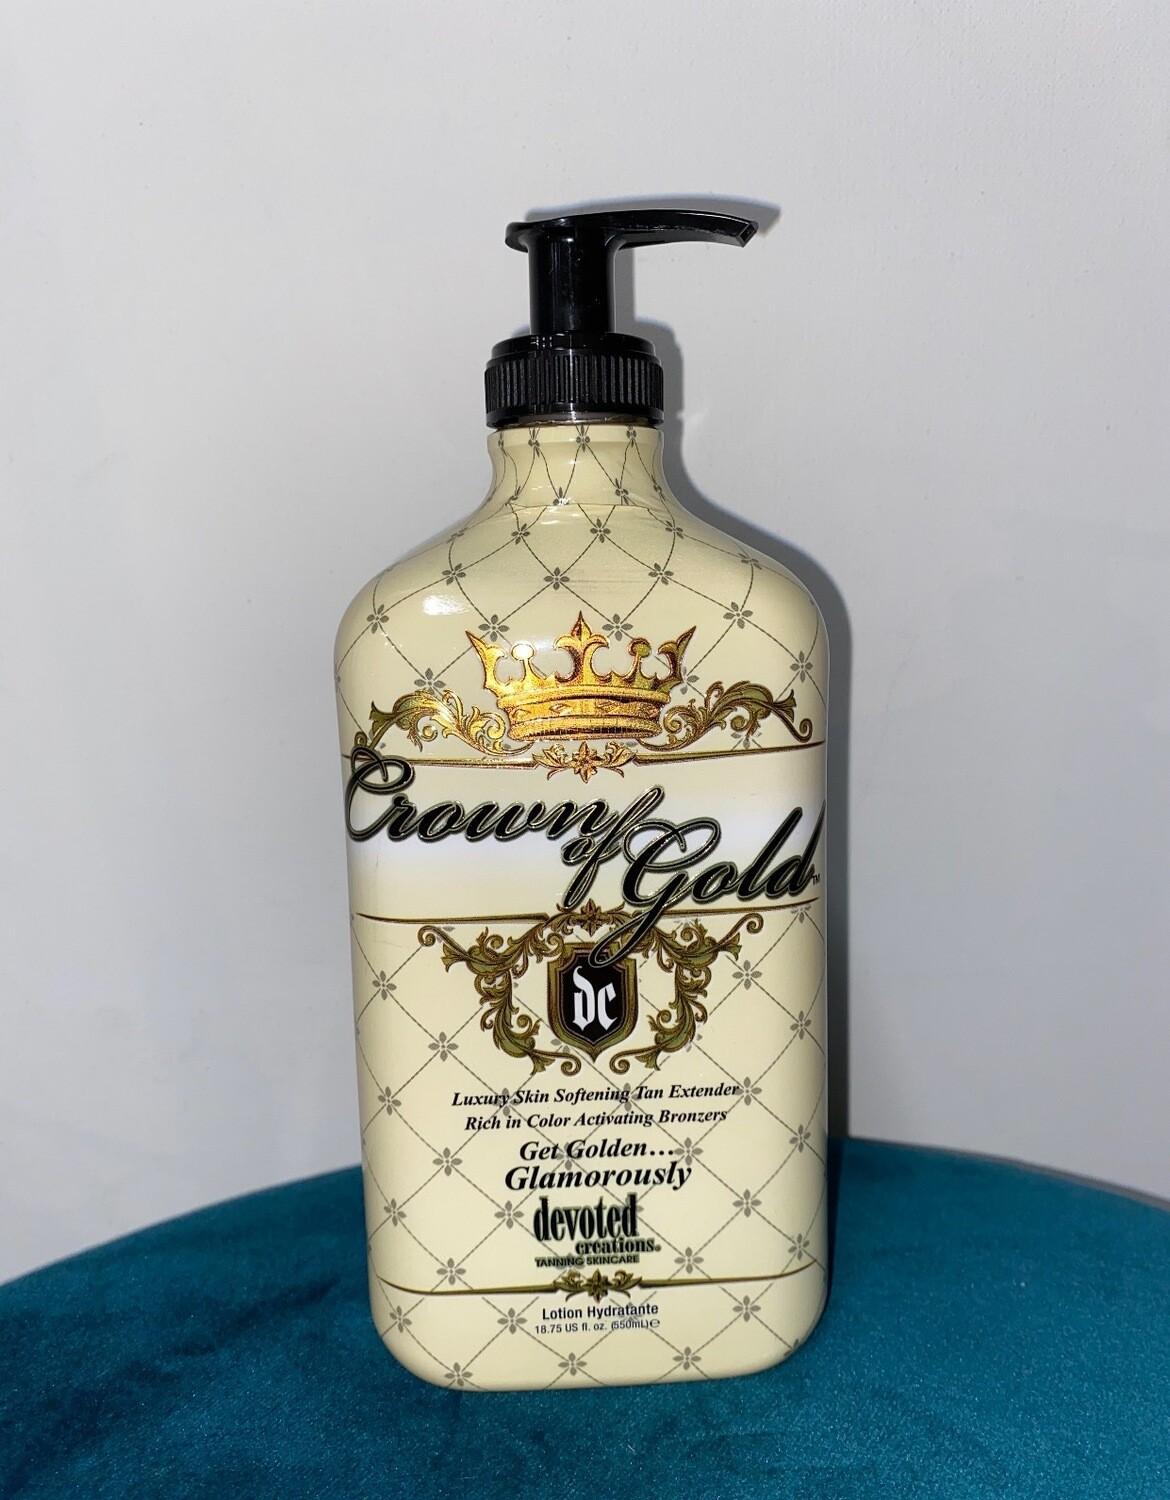 DC Crown Of Gold Tan Extender